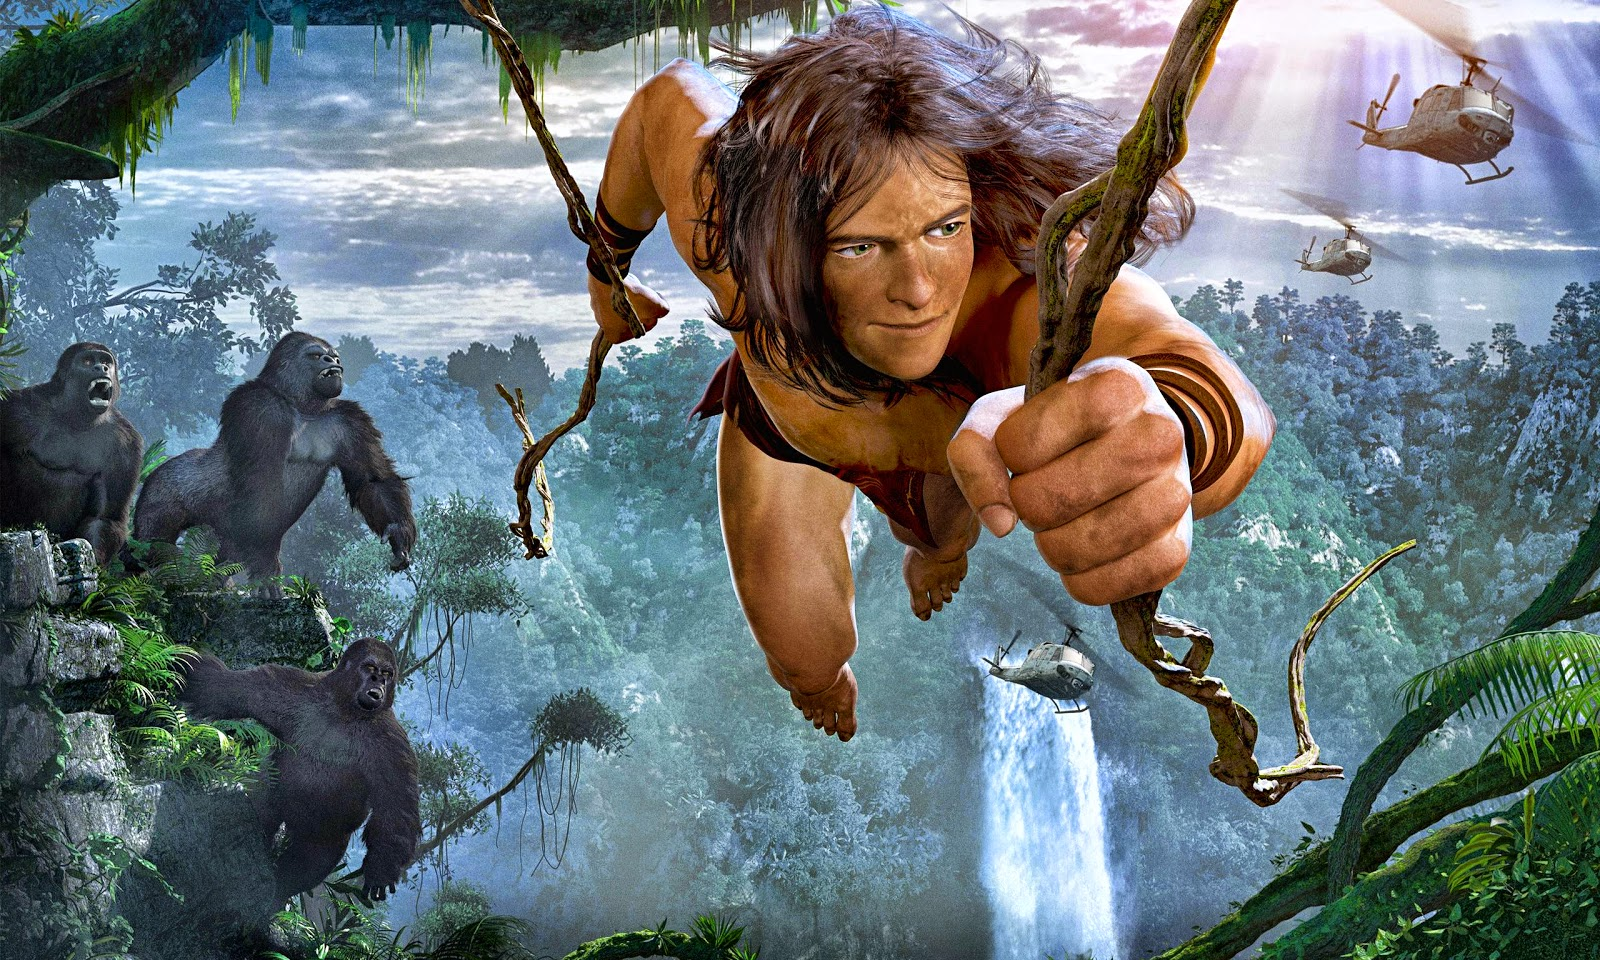 tarzan online dating Tarzan's world collides with the arrival of humans, forcing tarzan to choose between the beautiful jane and his gorilla family.